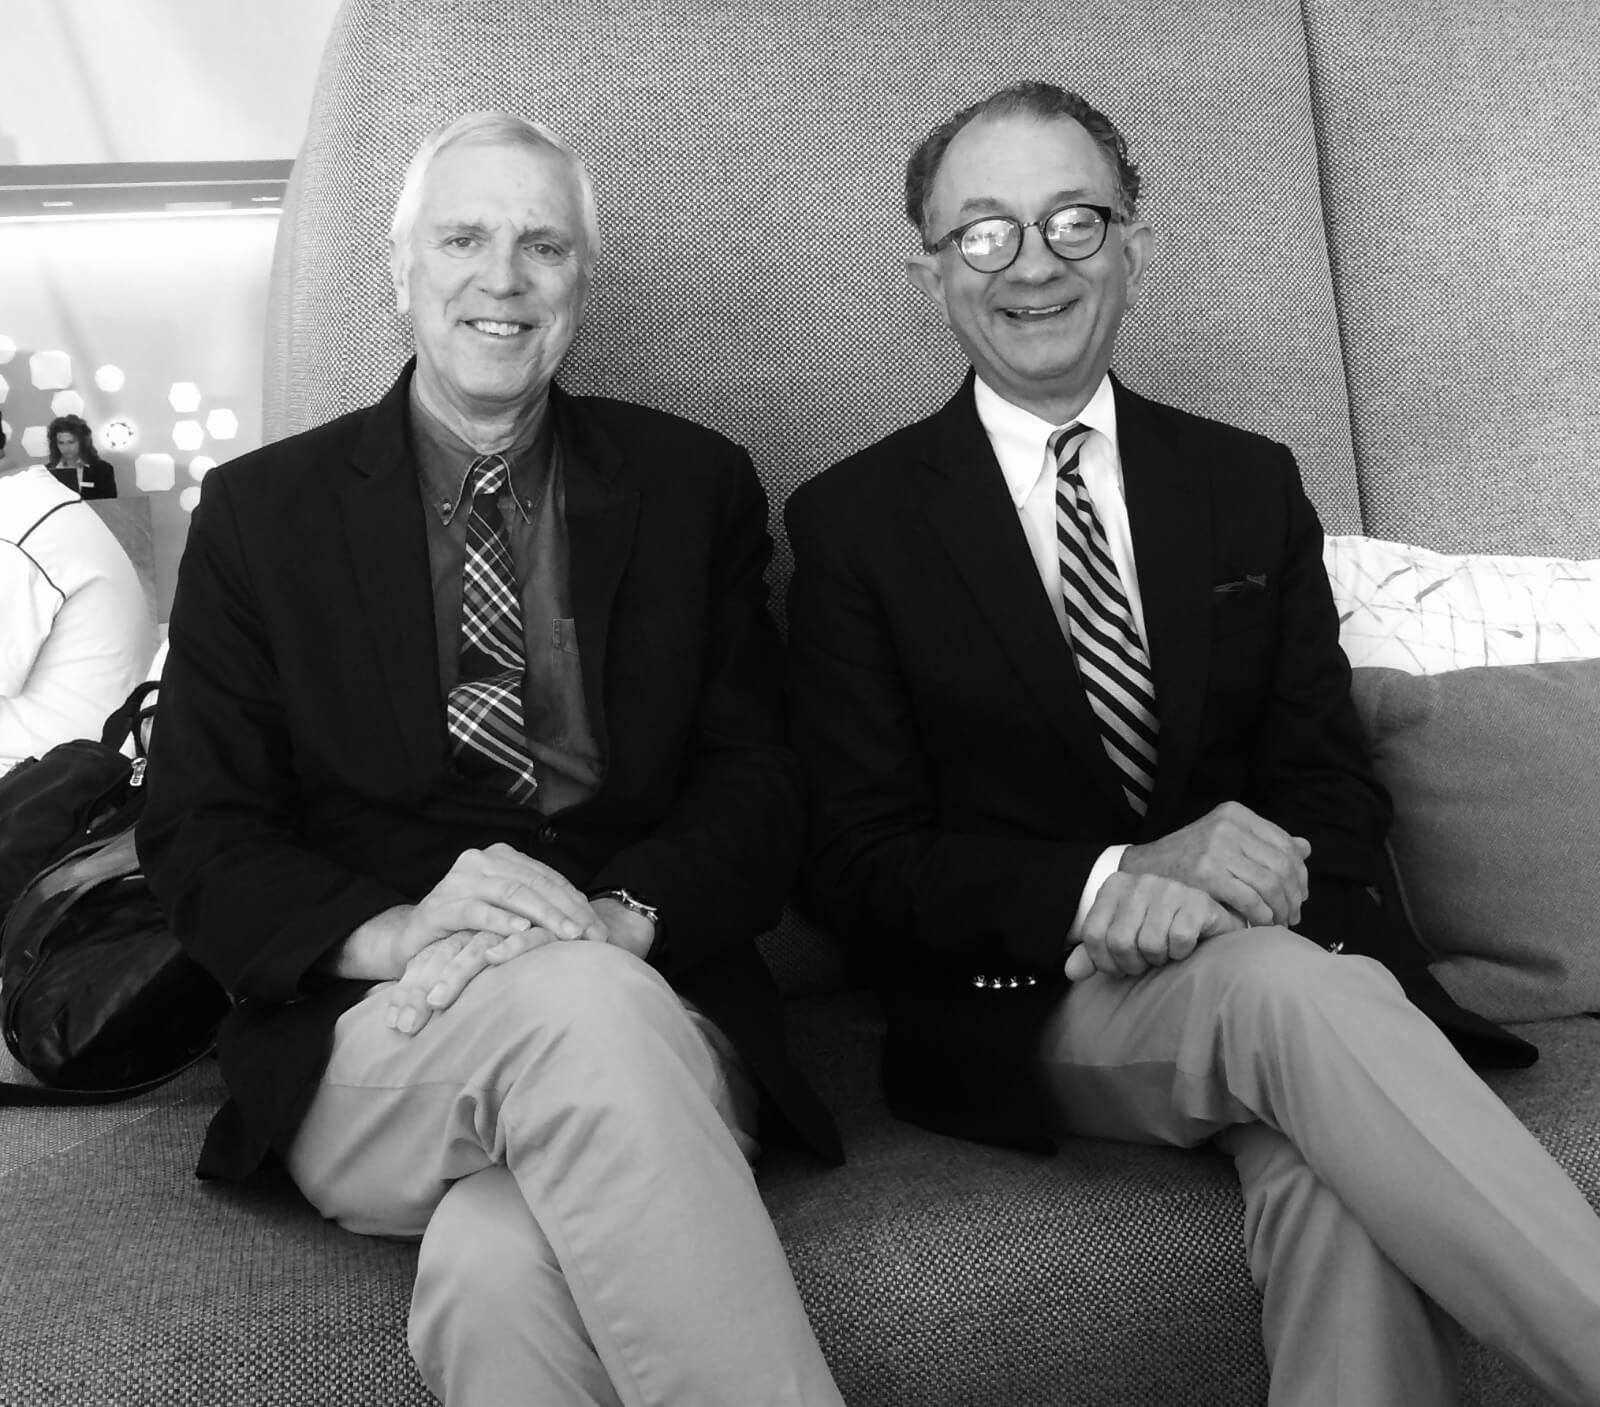 Seated are Stroman collaborators Ken Billington (lighting design) and William Ivey Long (costume design). Both are in blazers and wearing a tie.